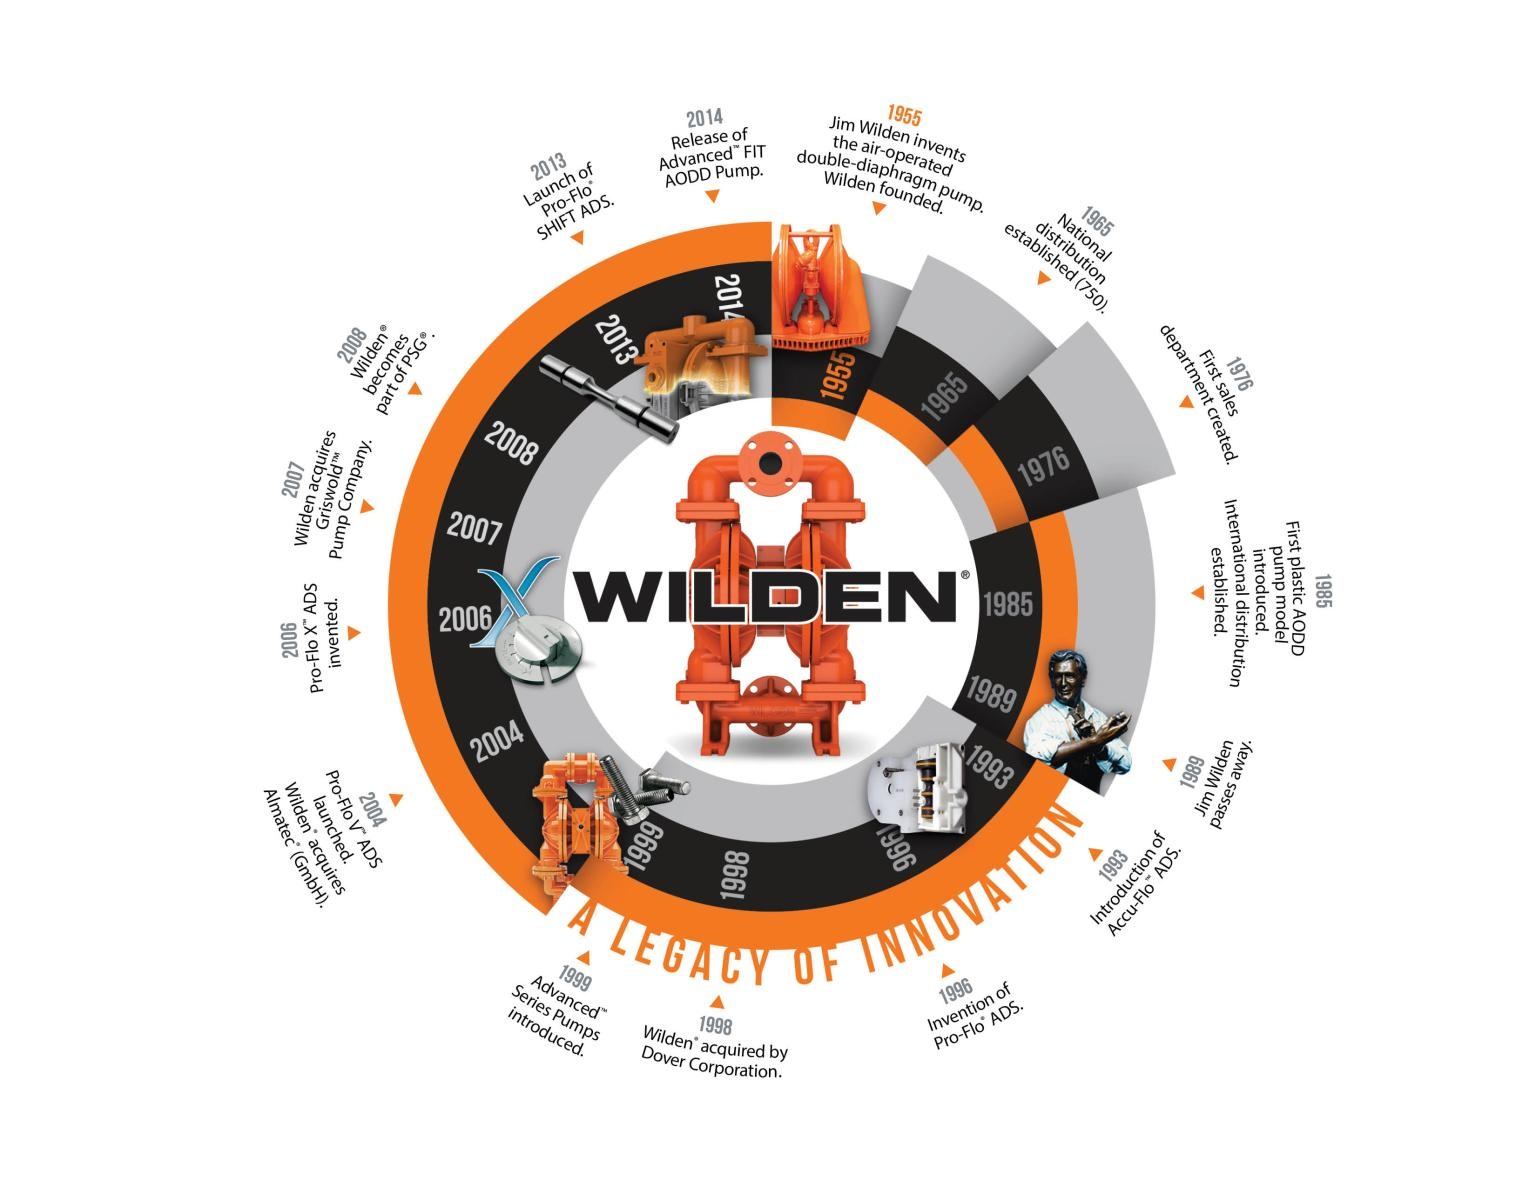 WILDEN - Consistent Innovation